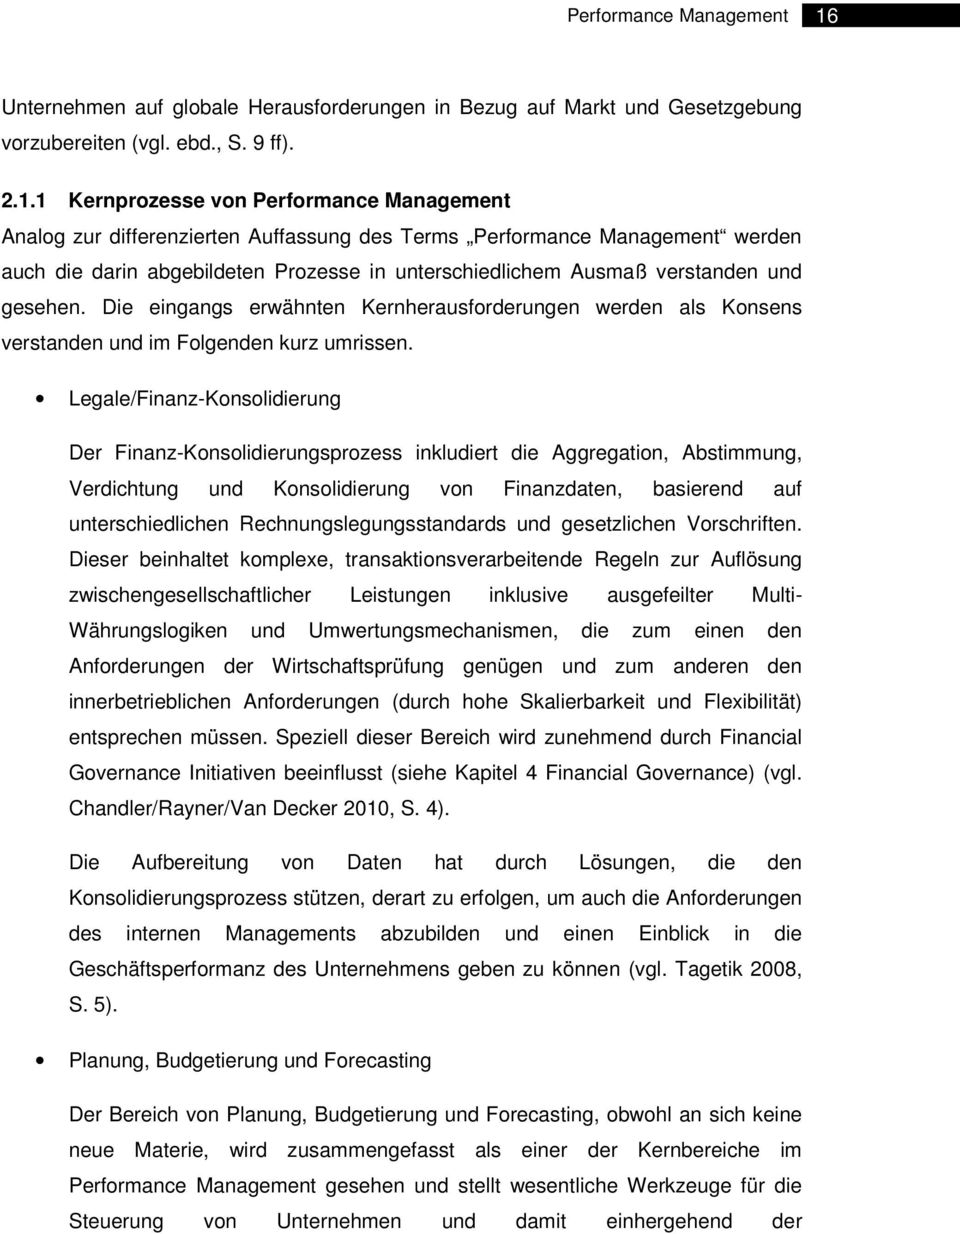 1 Kernprozesse von Performance Management Analog zur differenzierten Auffassung des Terms Performance Management werden auch die darin abgebildeten Prozesse in unterschiedlichem Ausmaß verstanden und